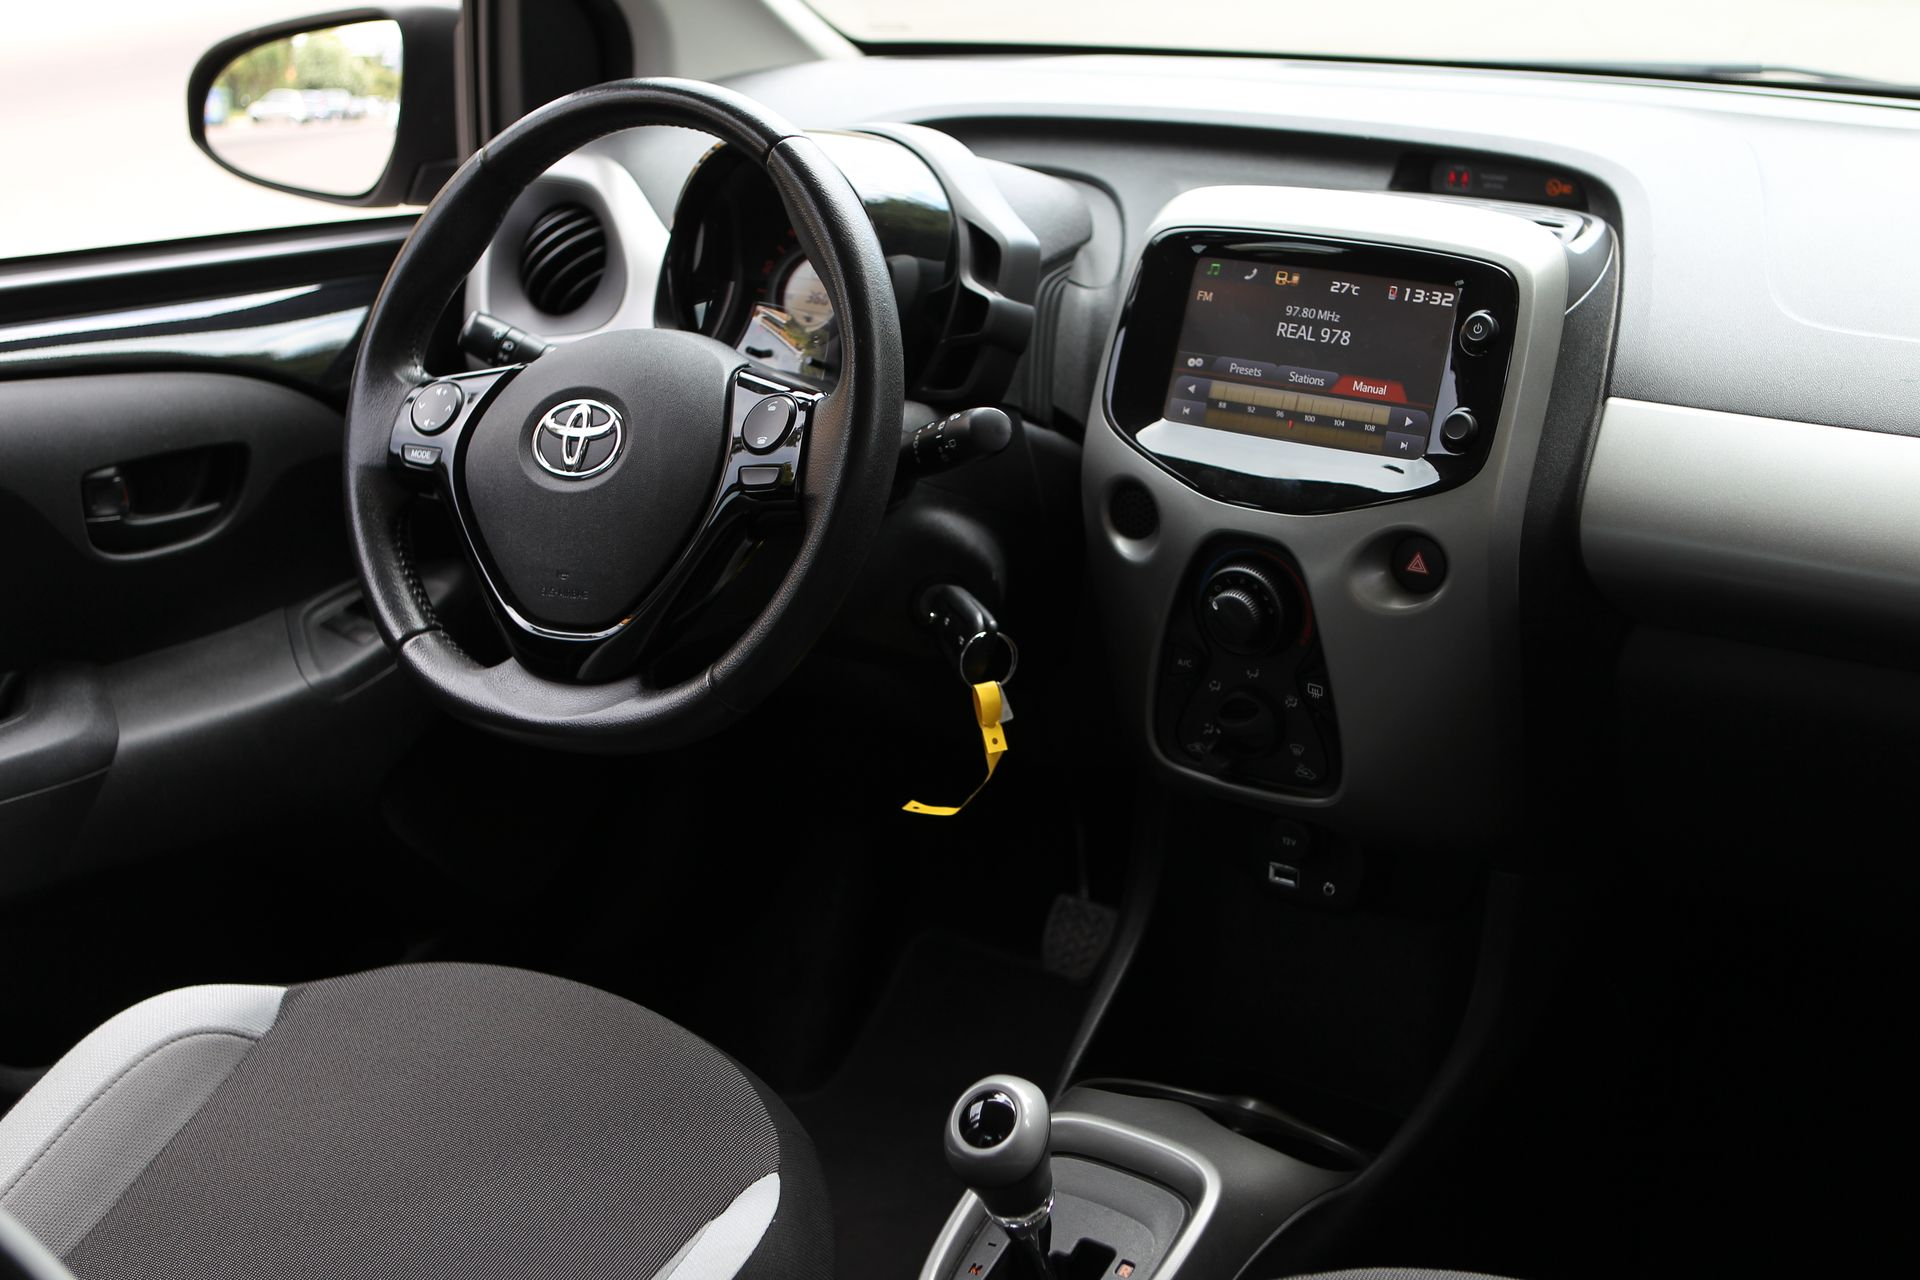 Toyota Aygo Used2Drive 4